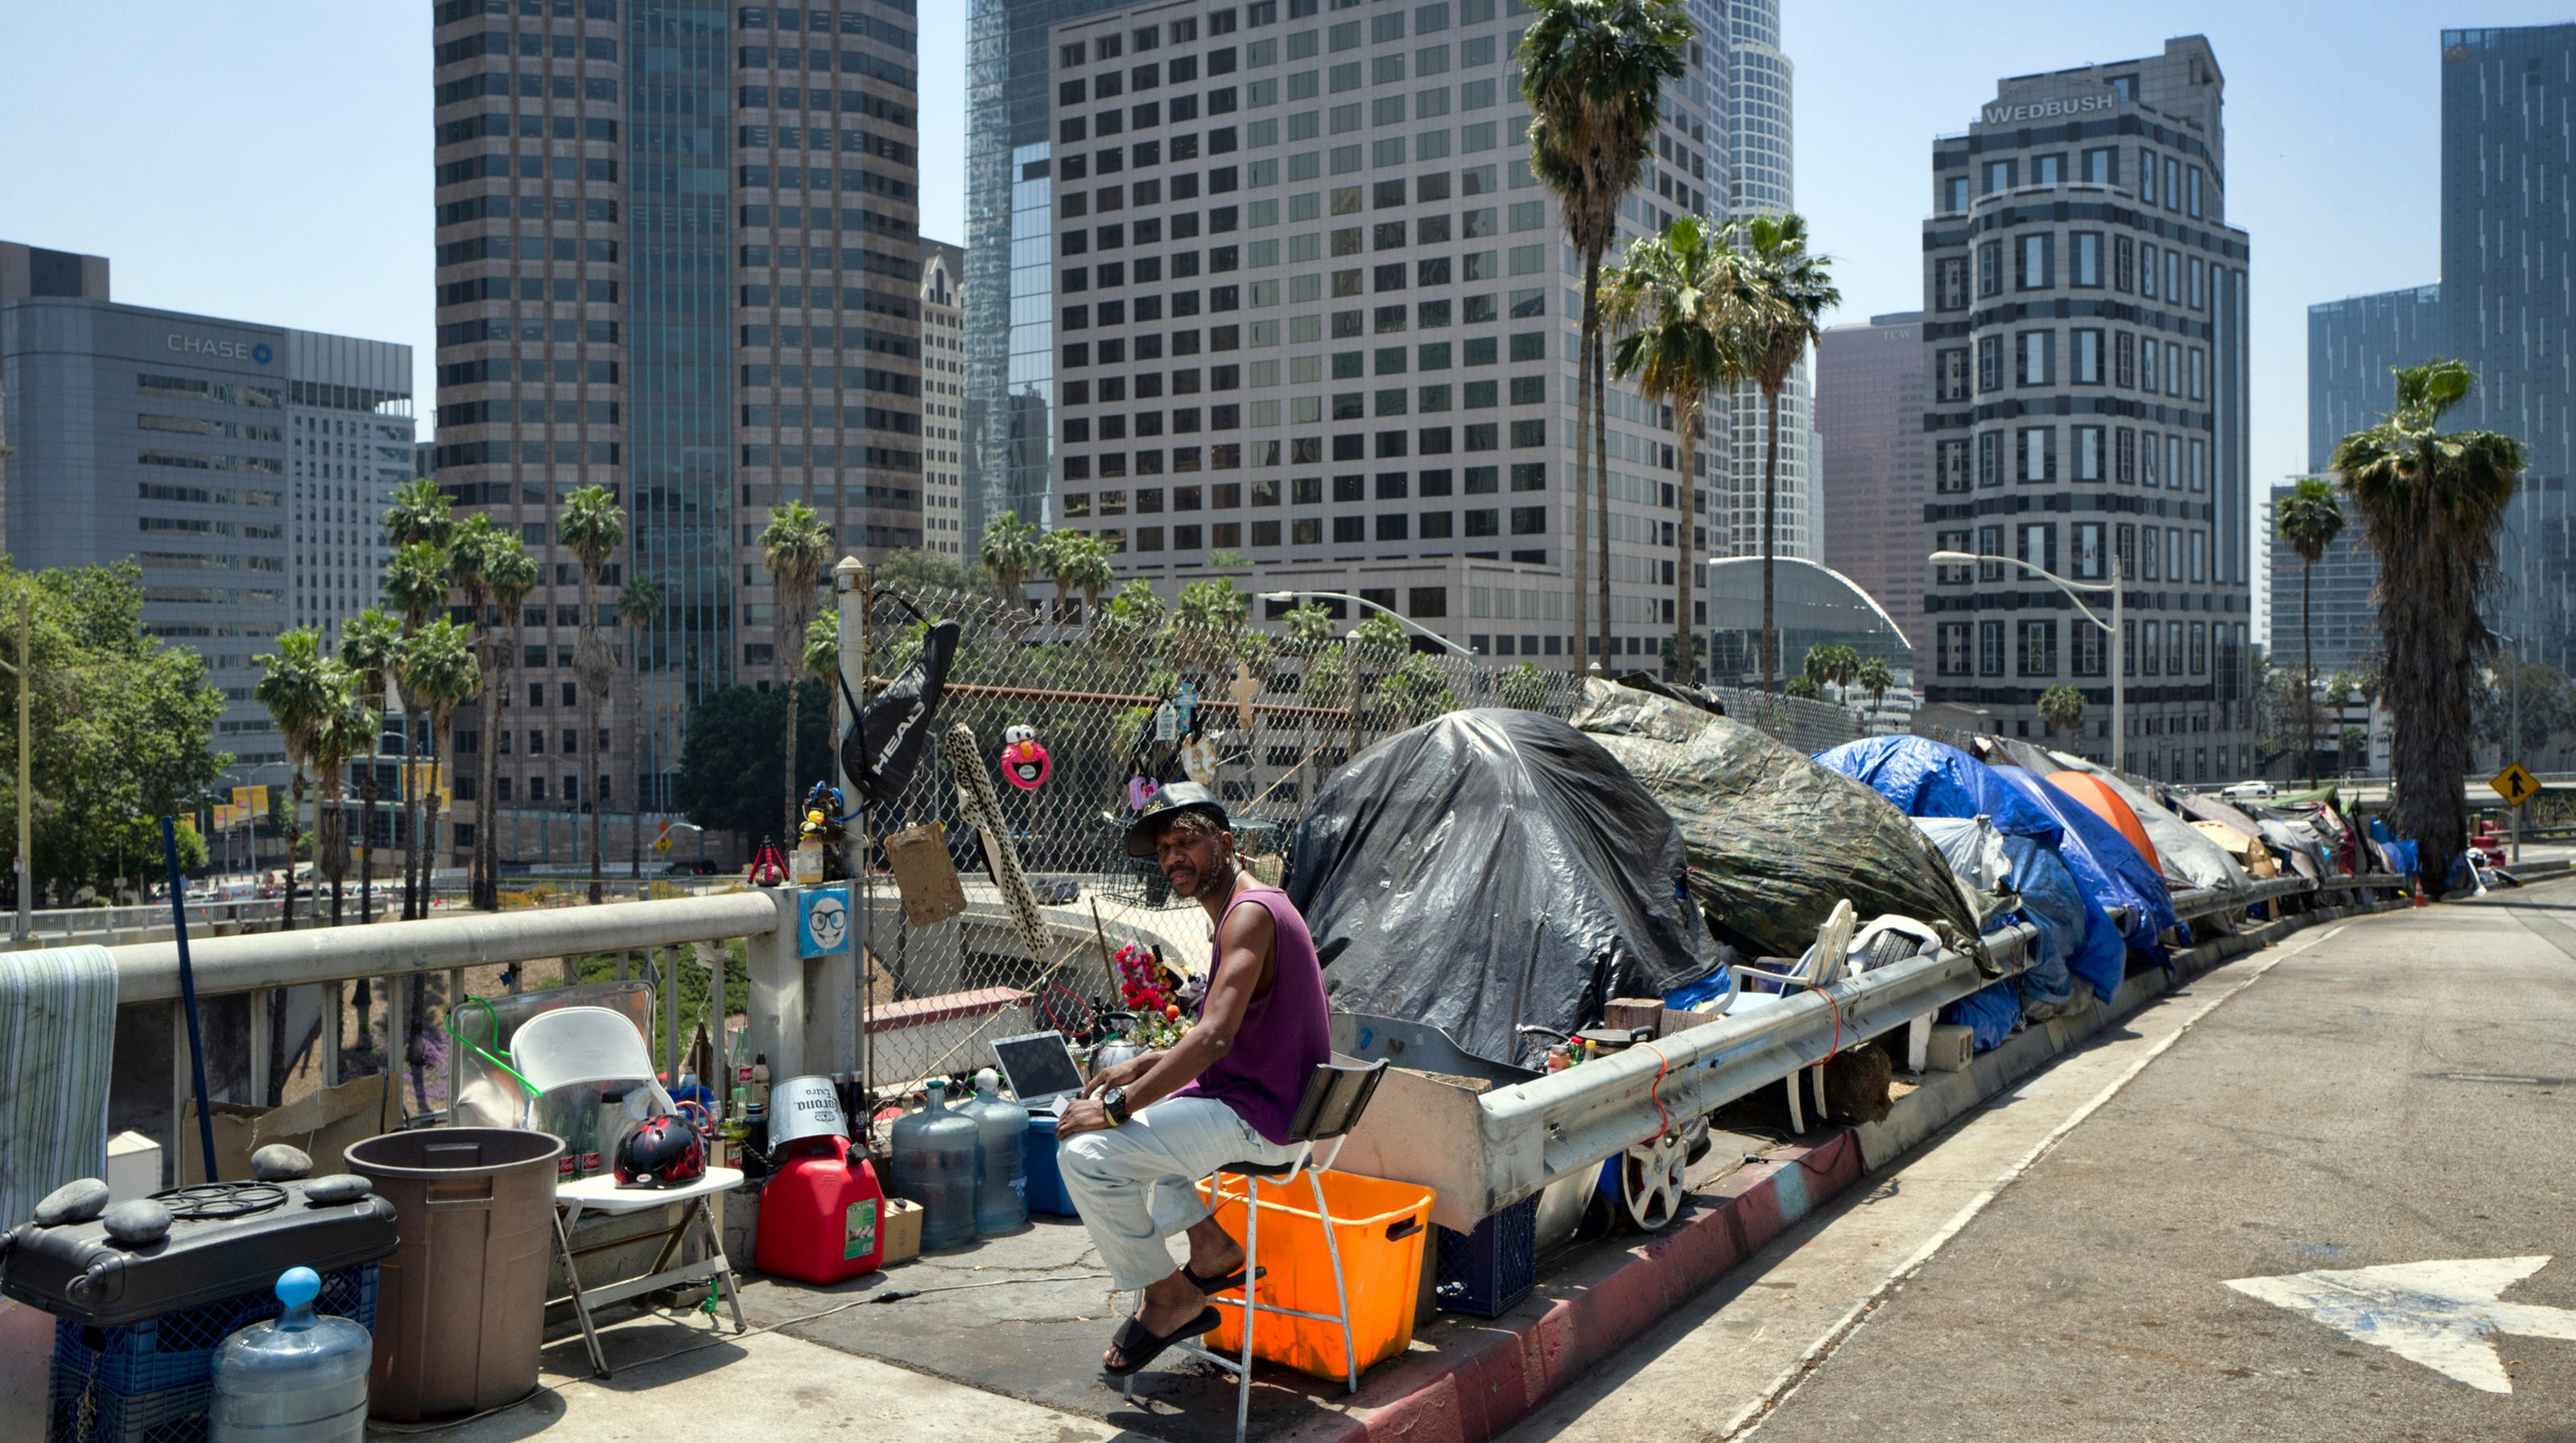 As Trump officials target California's homeless crisis, state officials brace for fight